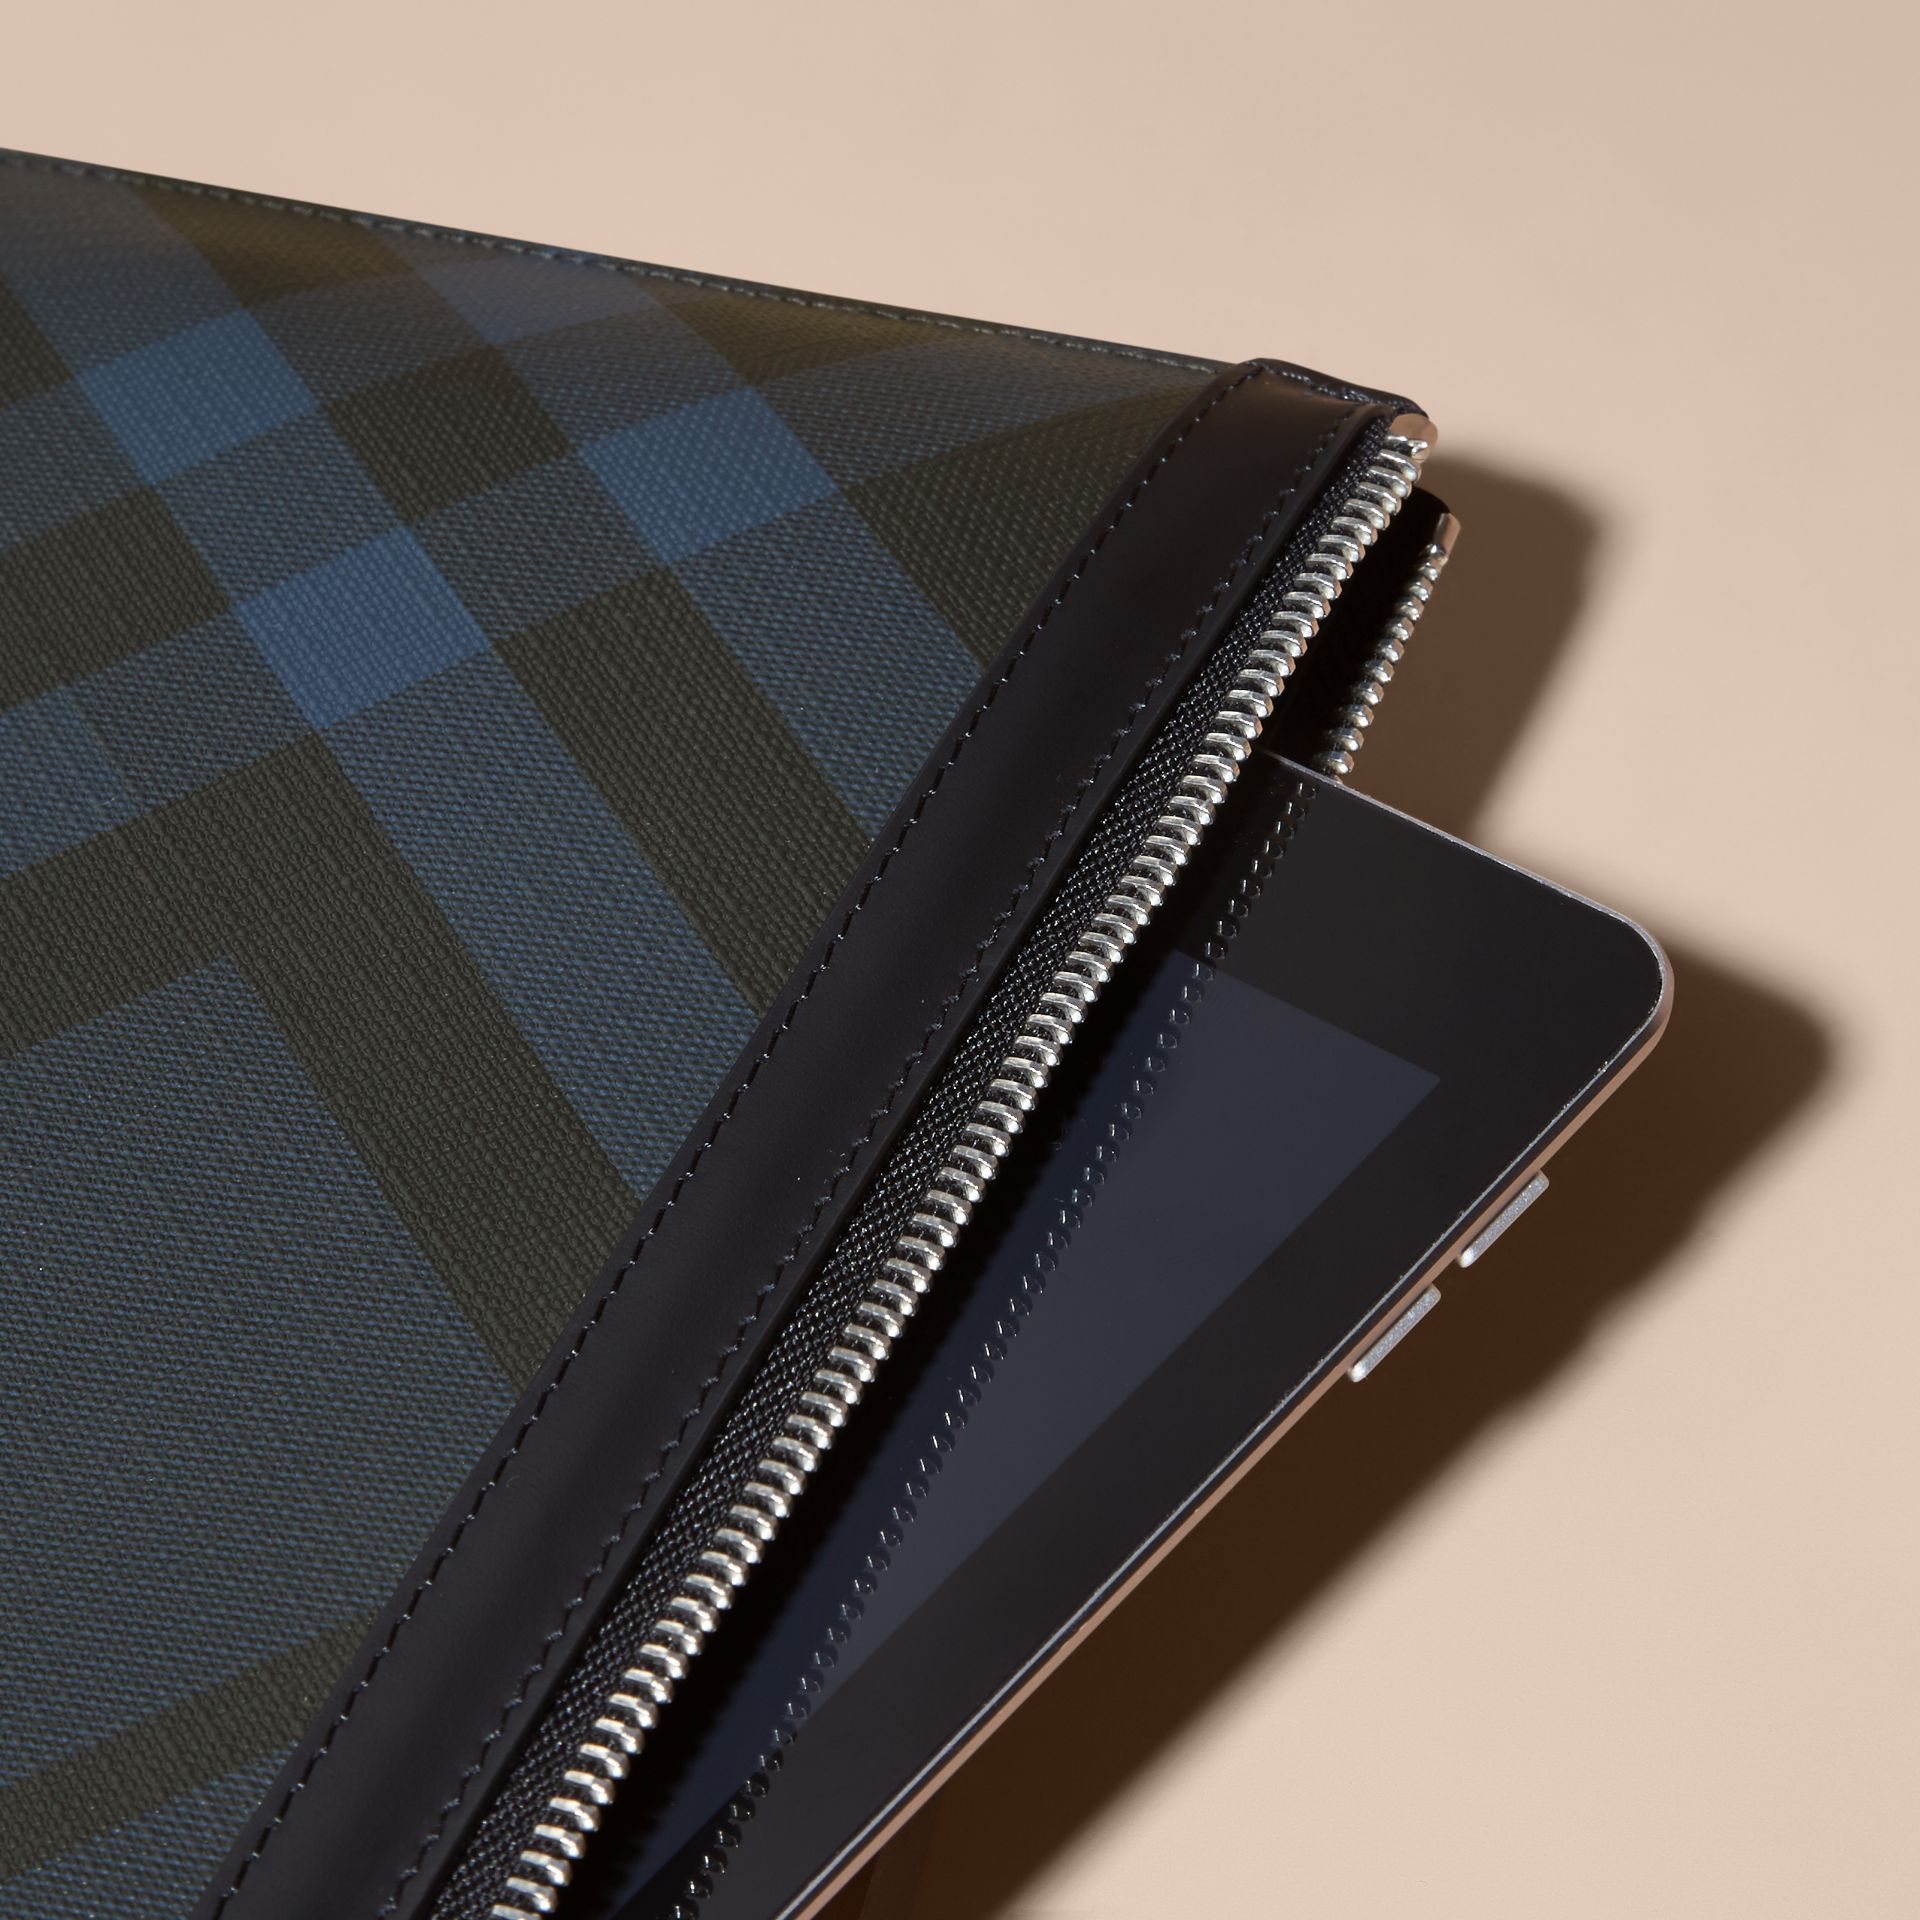 Zipped London Check Pouch in Navy/black - Men | Burberry Australia - gallery image 2